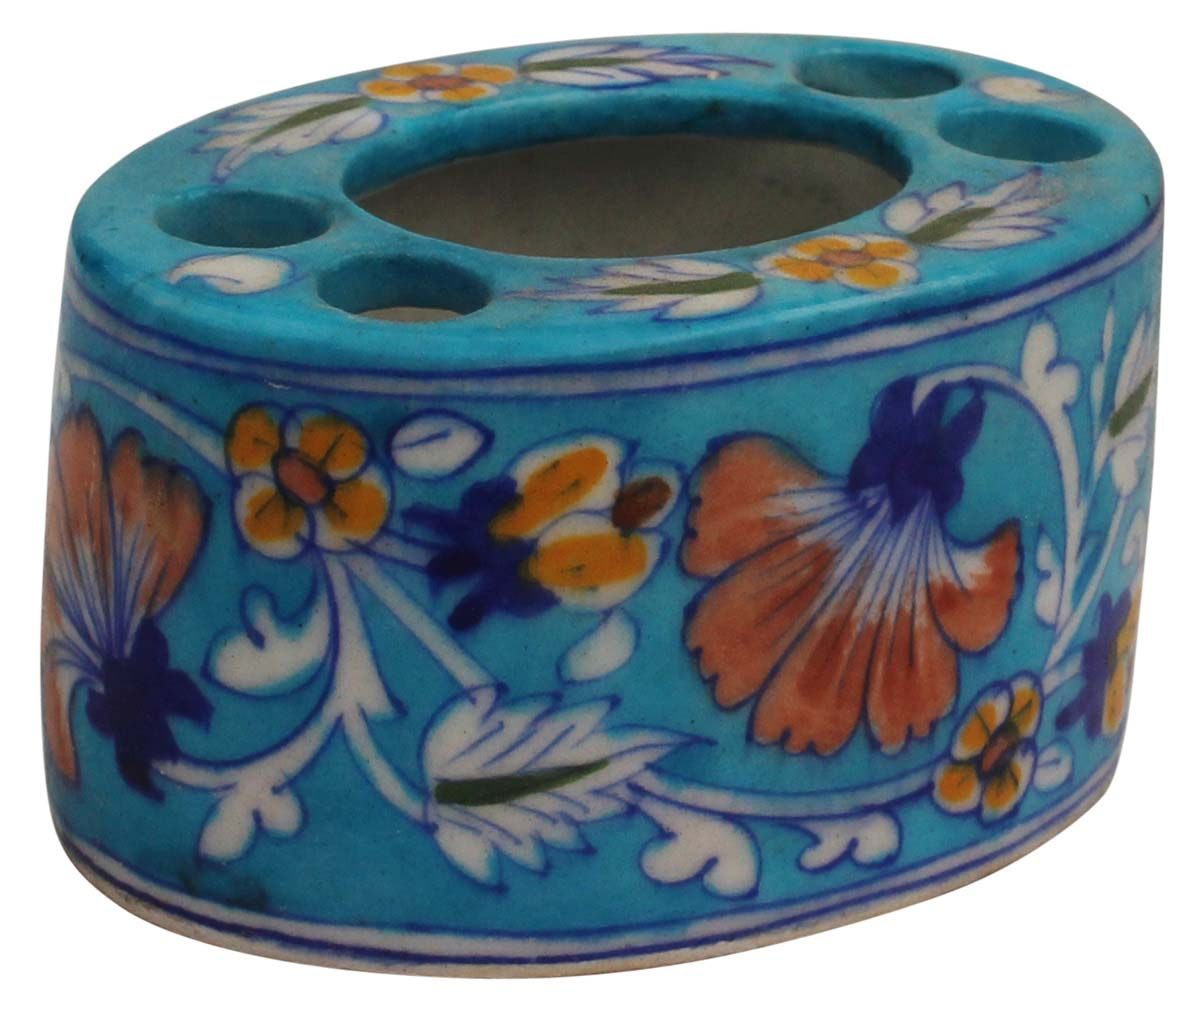 """Hand-Painted Sky-Blue Tooth-Brush / Toothpaste Holder in Ceramic – 5"""" Bathroom Organizers / Accessories from India-Buy in Bulk Wholesale"""